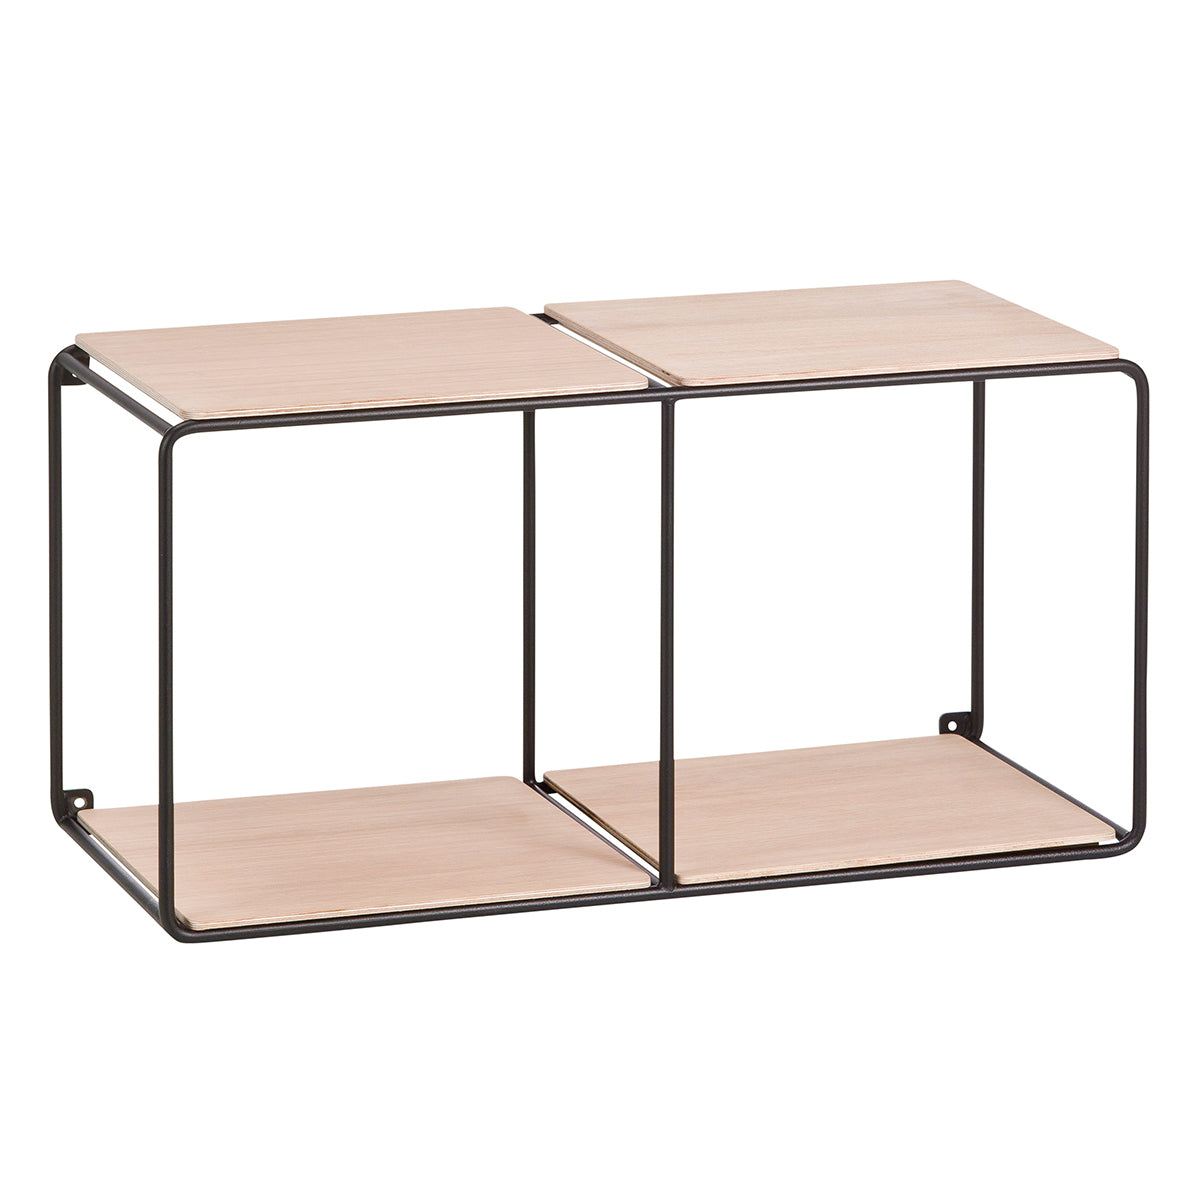 Anywhere 1 x 2 (4 Shelves) - Korridor - Do Shop